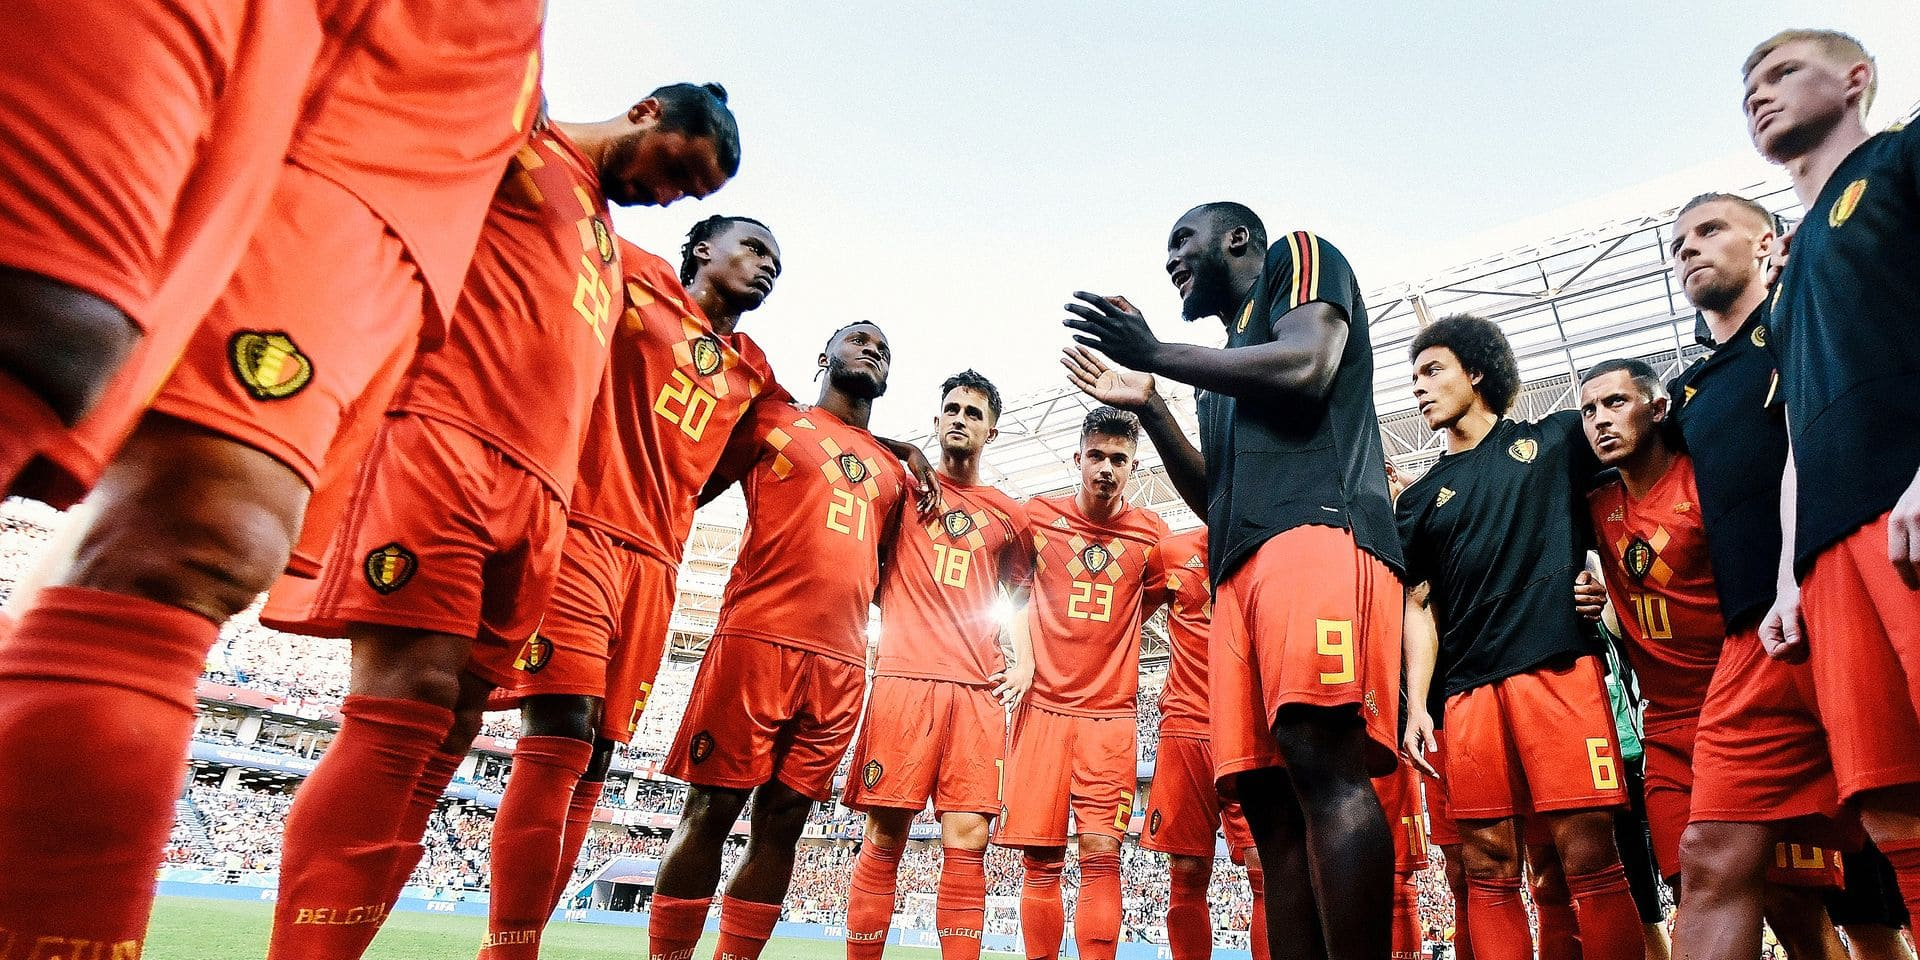 Belgium's Romelu Lukaku (C) gives a peptalk to his teammates before the start of a soccer game between Belgian national soccer team the Red Devils and England, Thursday 28 June 2018 in Kaliningrad, Russia, the third and last in Group G of the FIFA World Cup 2018. BELGA PHOTO DIRK WAEM